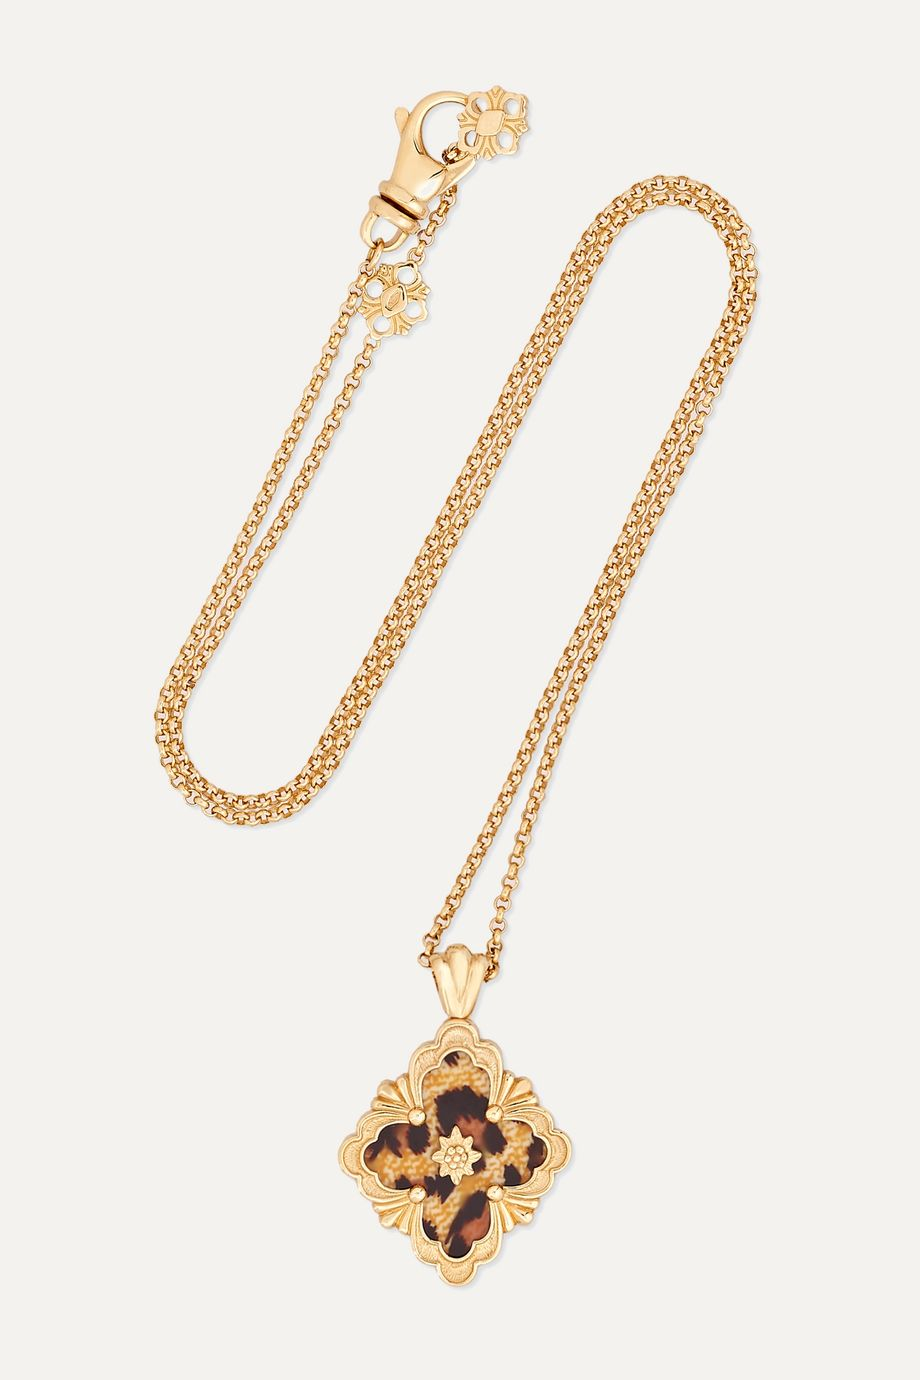 Buccellati 18-karat gold and enamel necklace